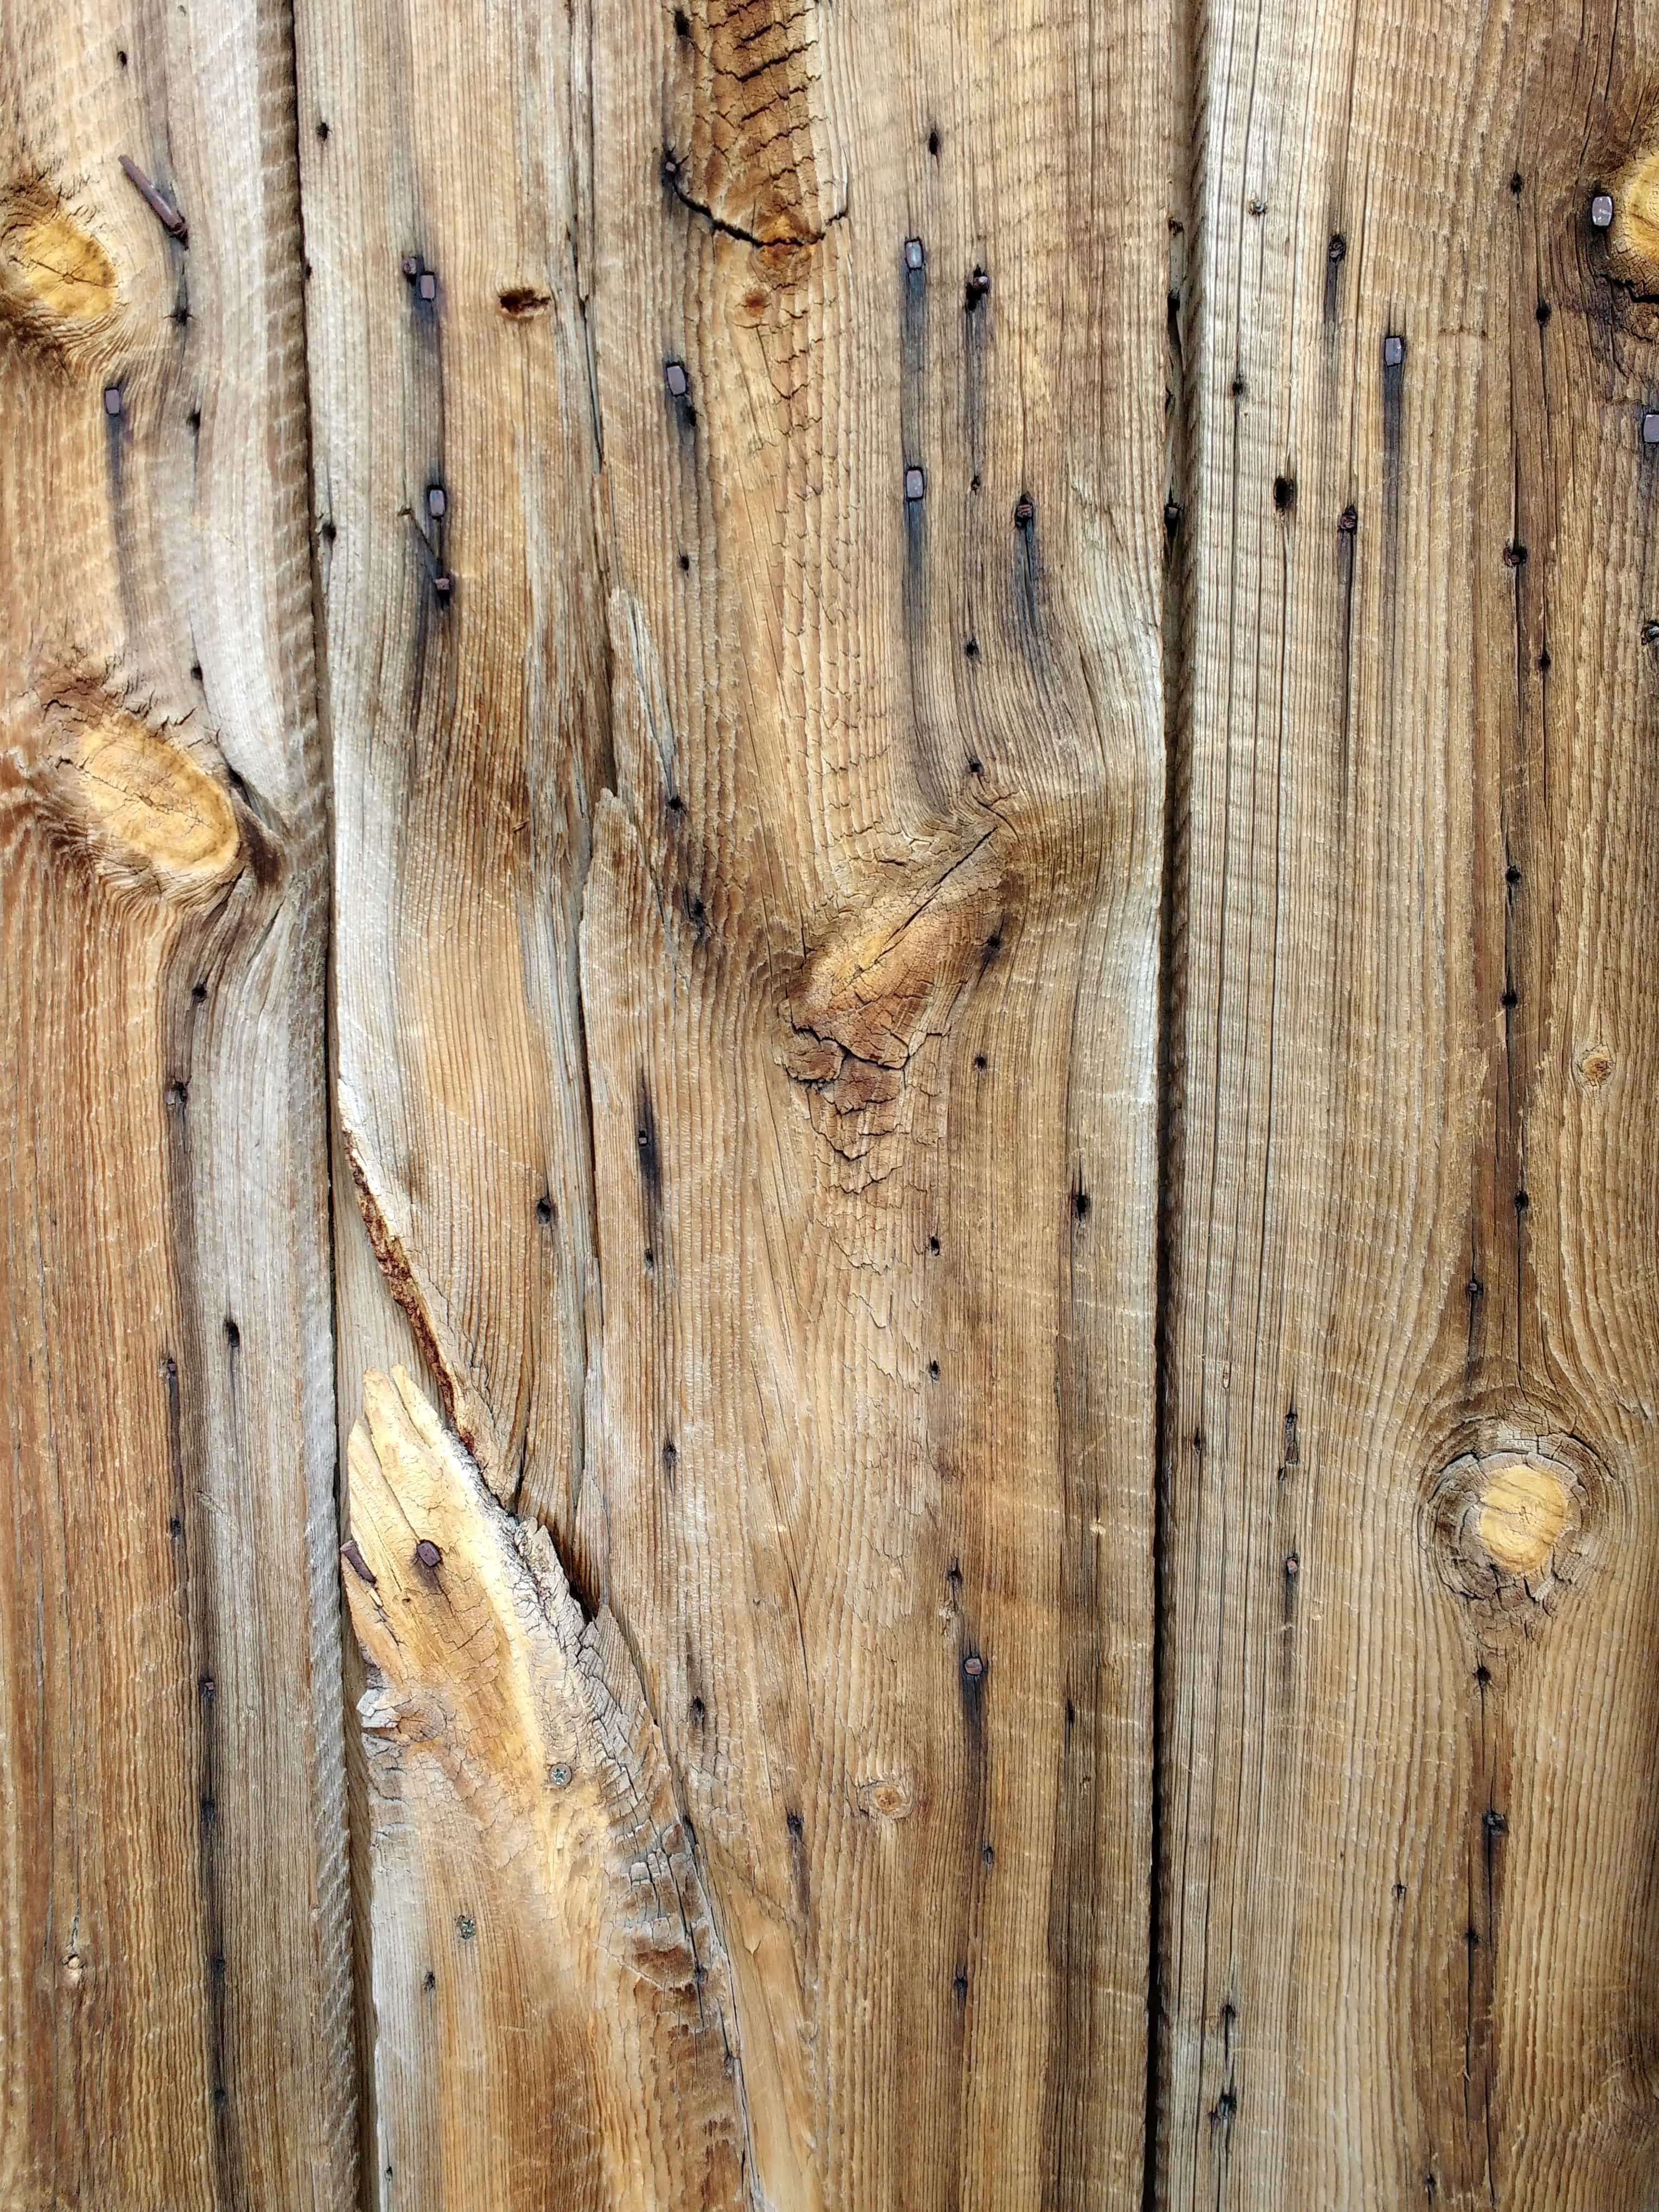 Free Picture Wood Fabric Surface Wooden Panel Old